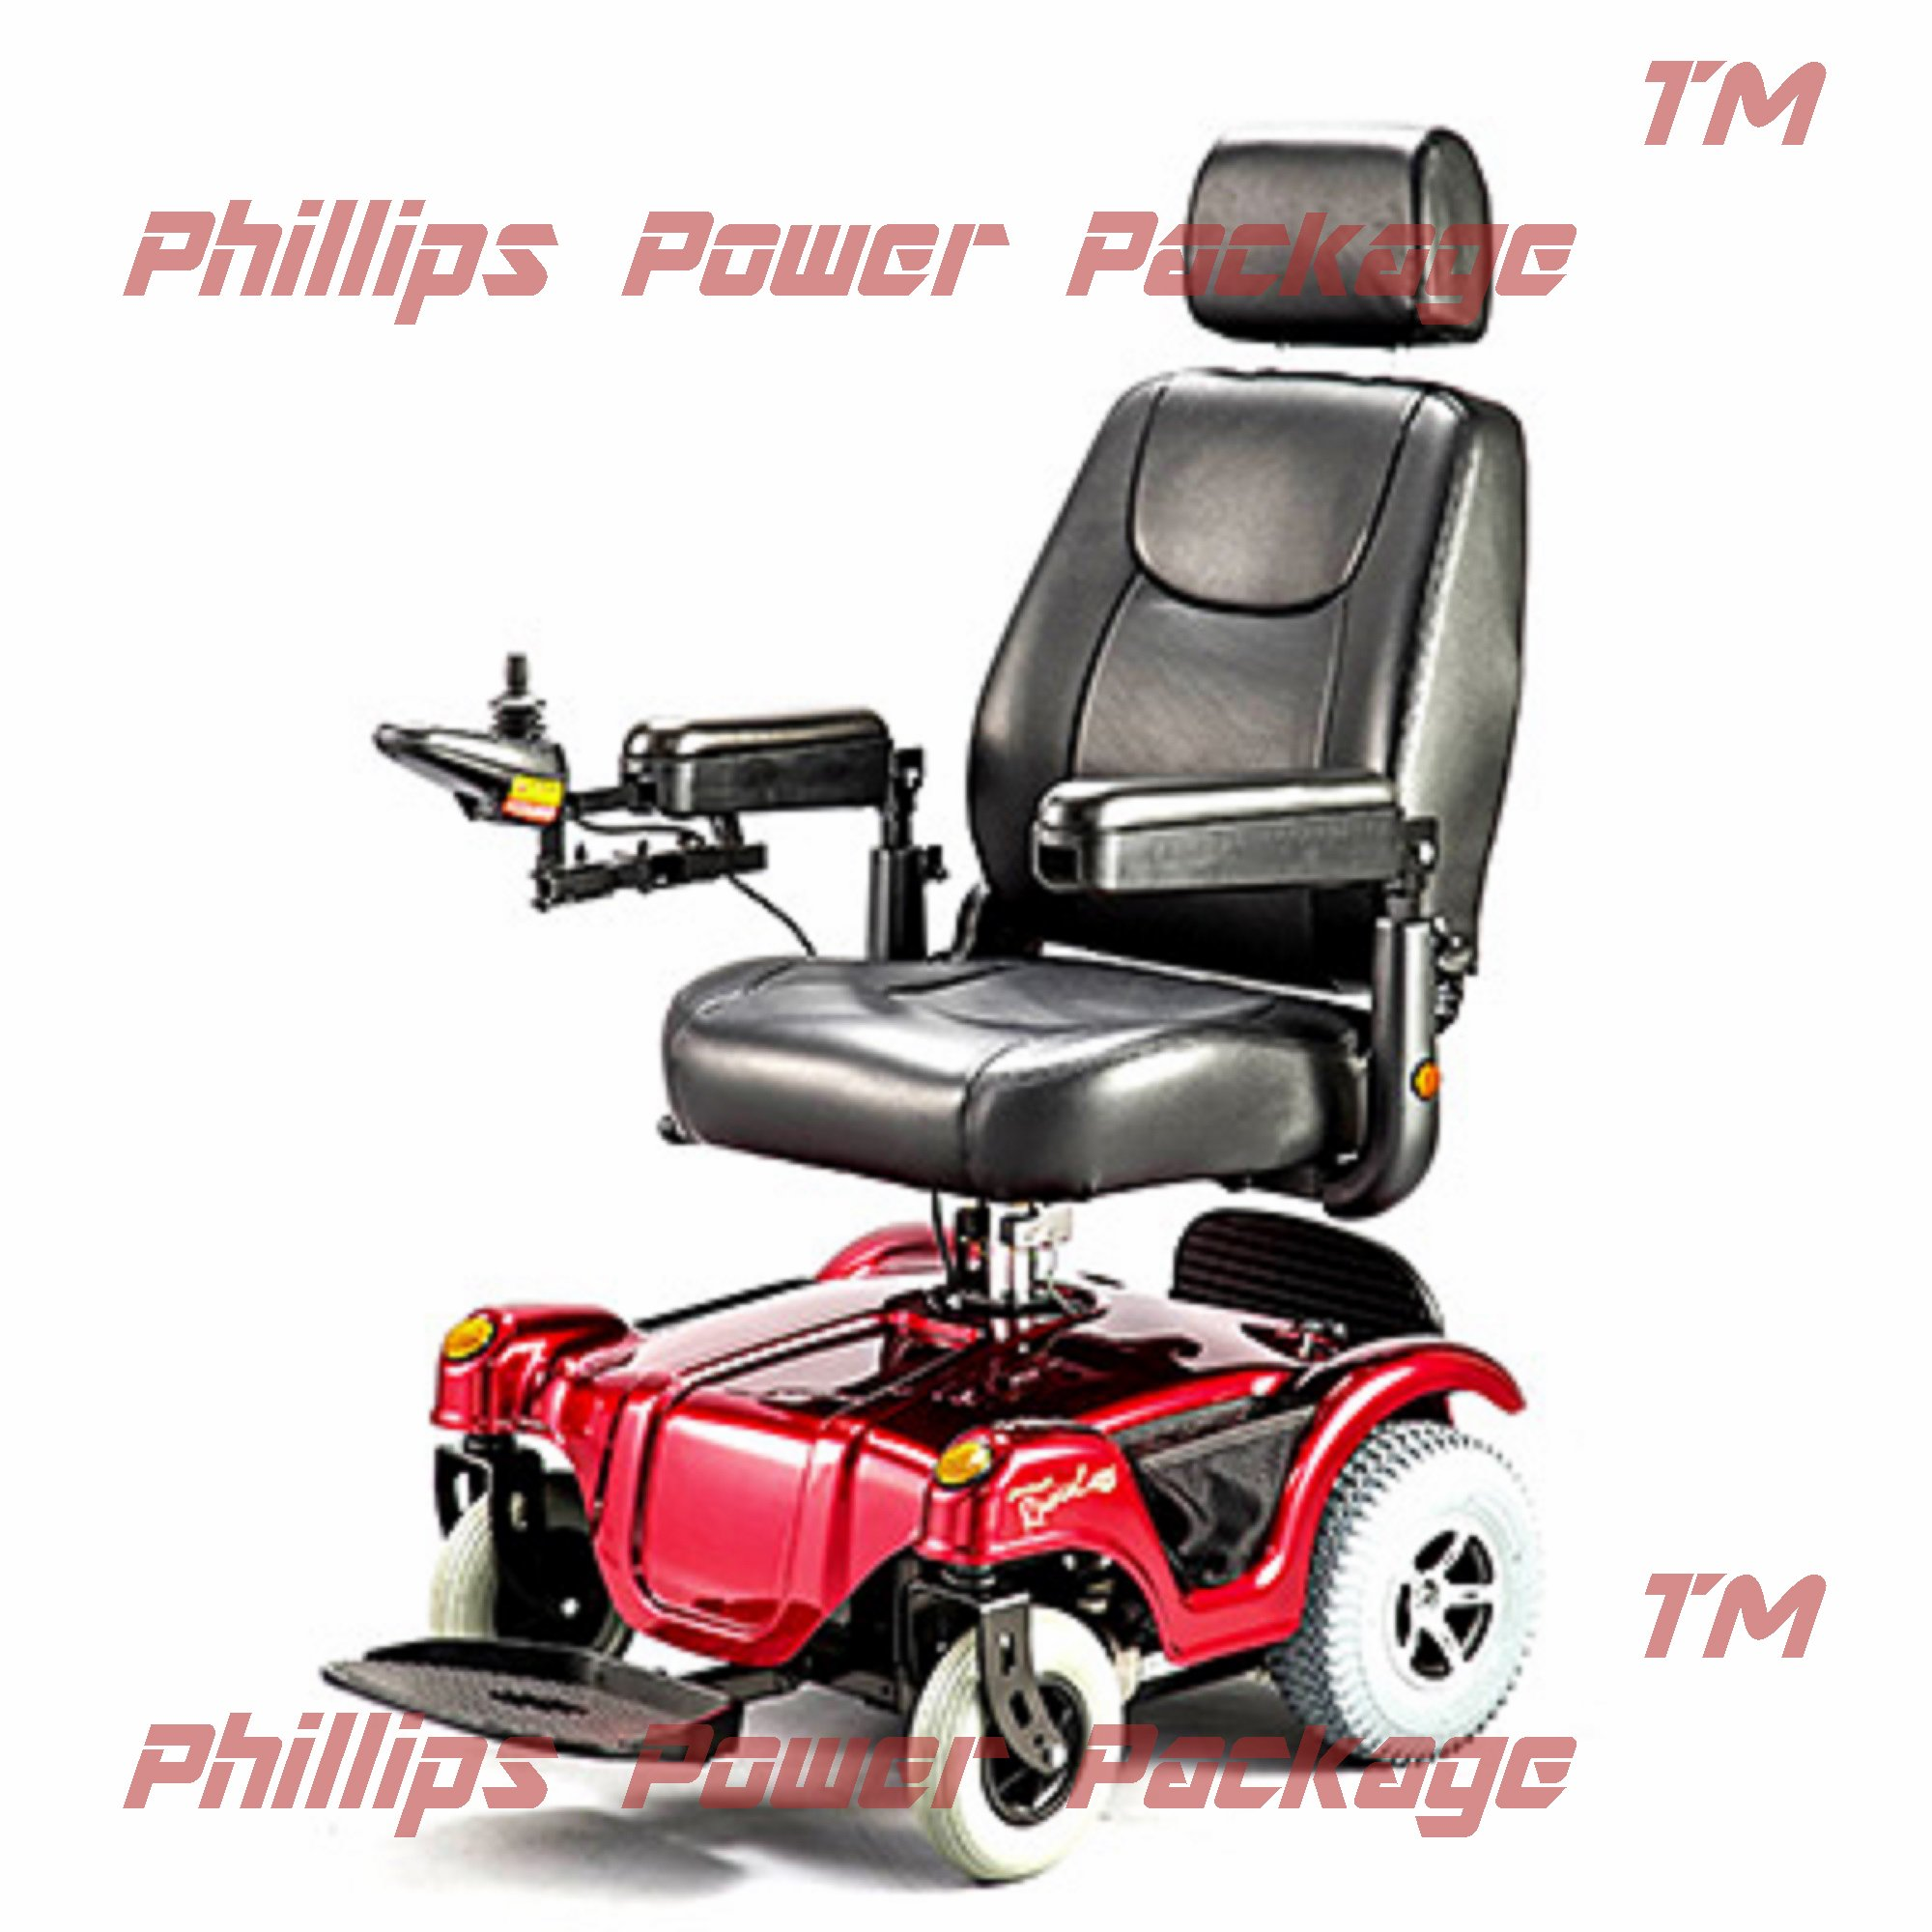 Merits Health Products - Compact FWD/RWD Dualer - Power Chair - 18''W x 16''D - Red - PHILLIPS POWER PACKAGE TM - TO $500 VALUE